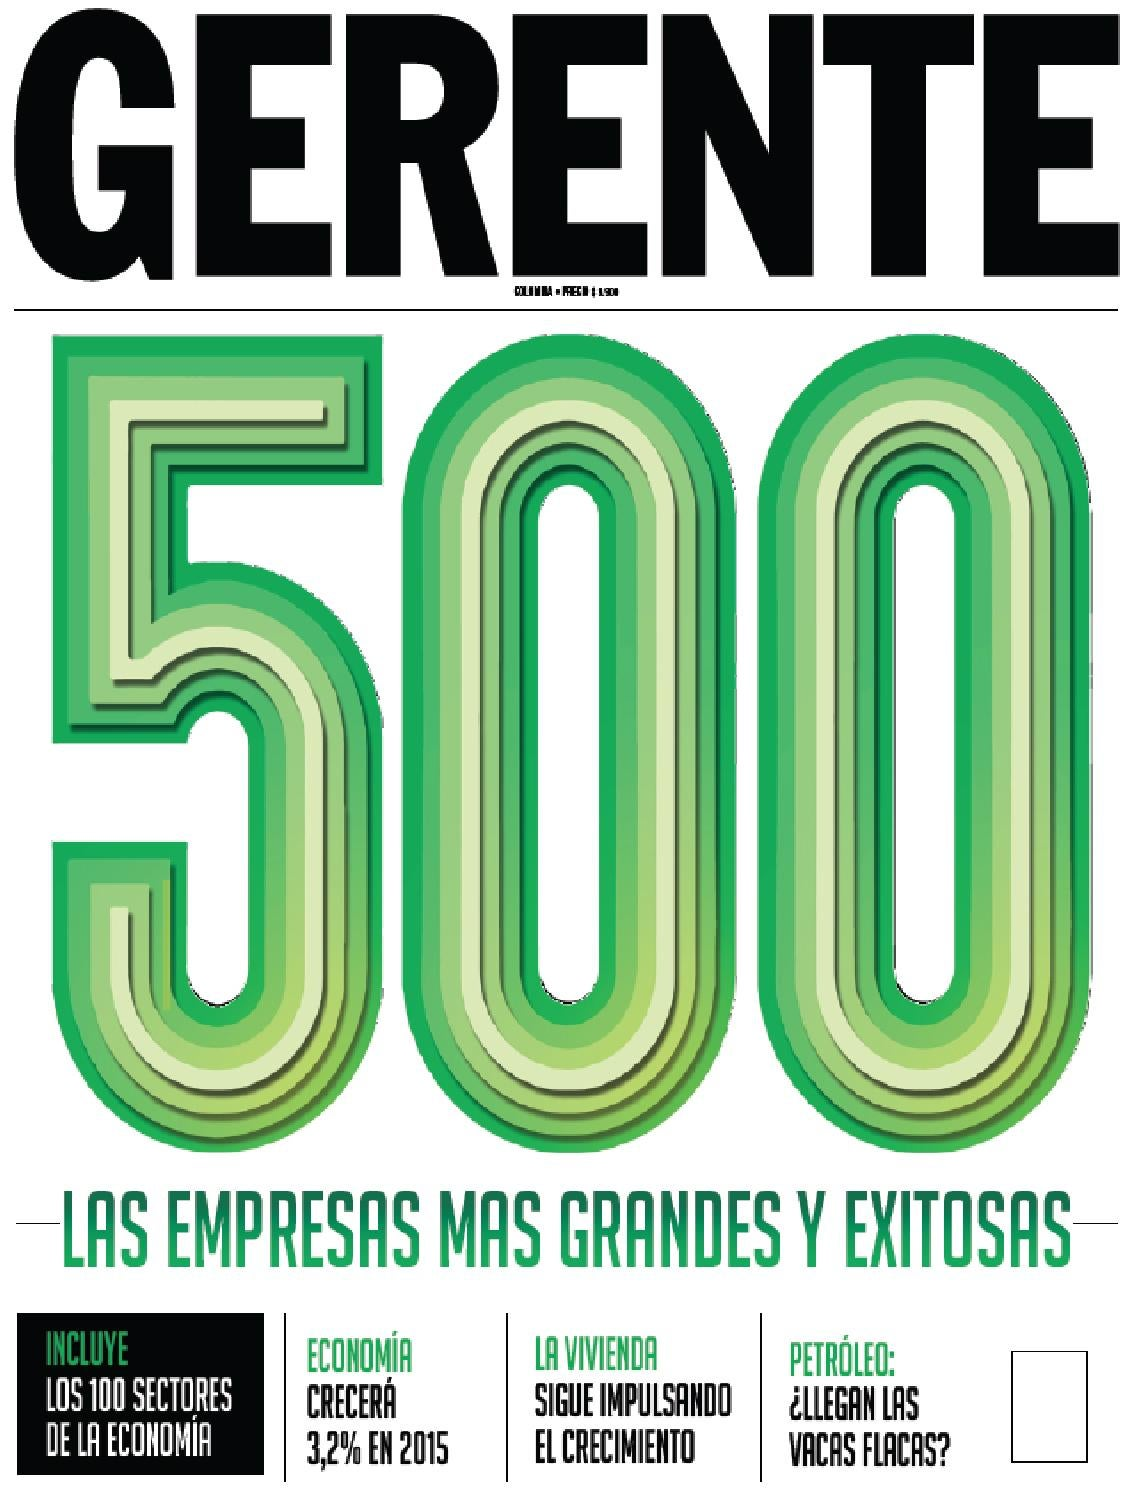 Revista Gerente Colombia 203 by Zulay Rodríguez - issuu